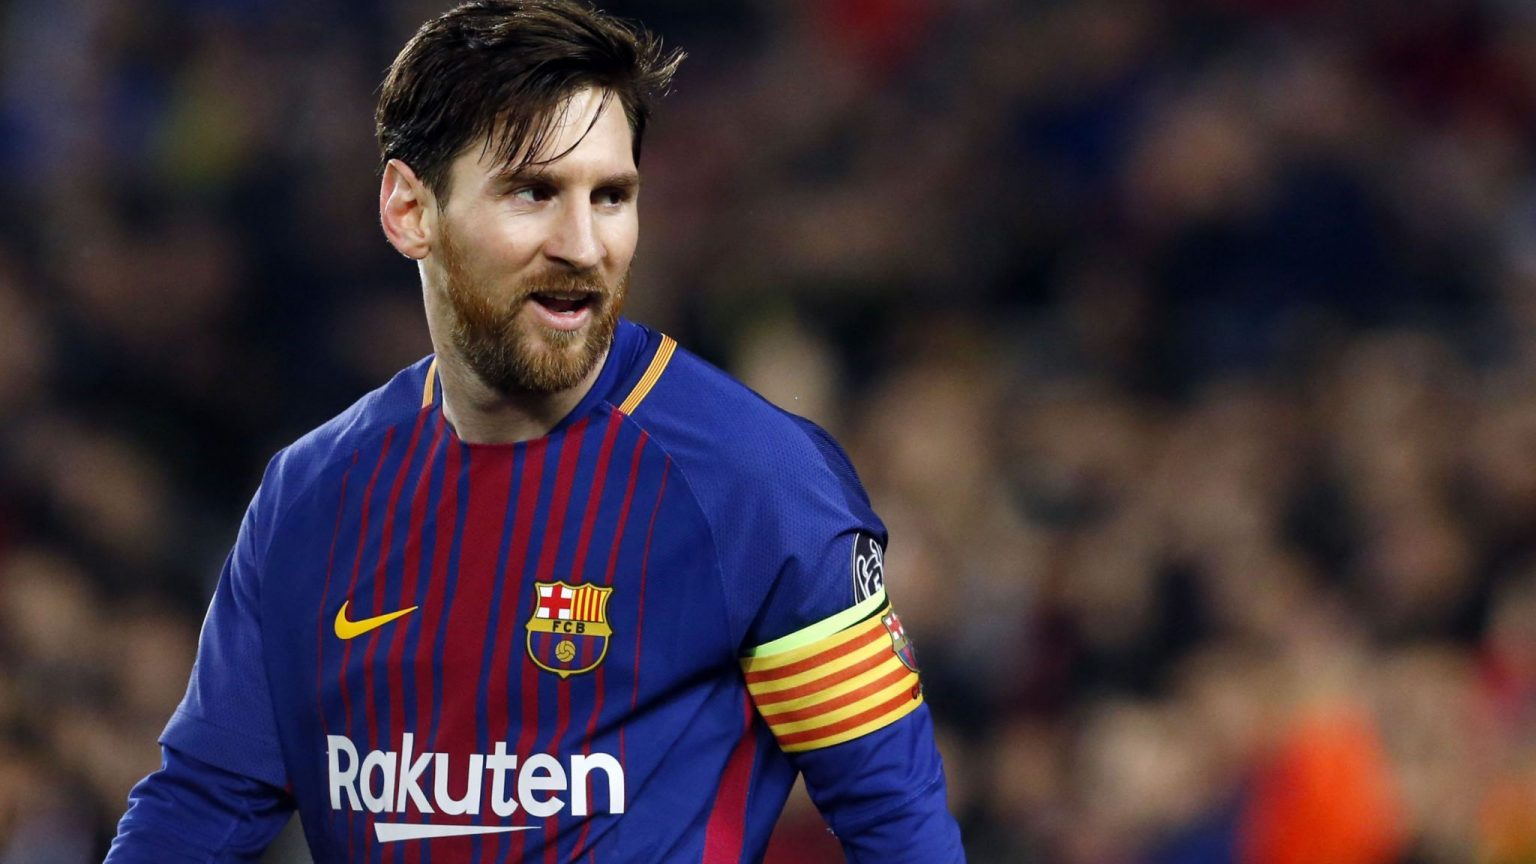 LaLiga: Messi reveals why he wanted to leave Barcelona, gives update on Future